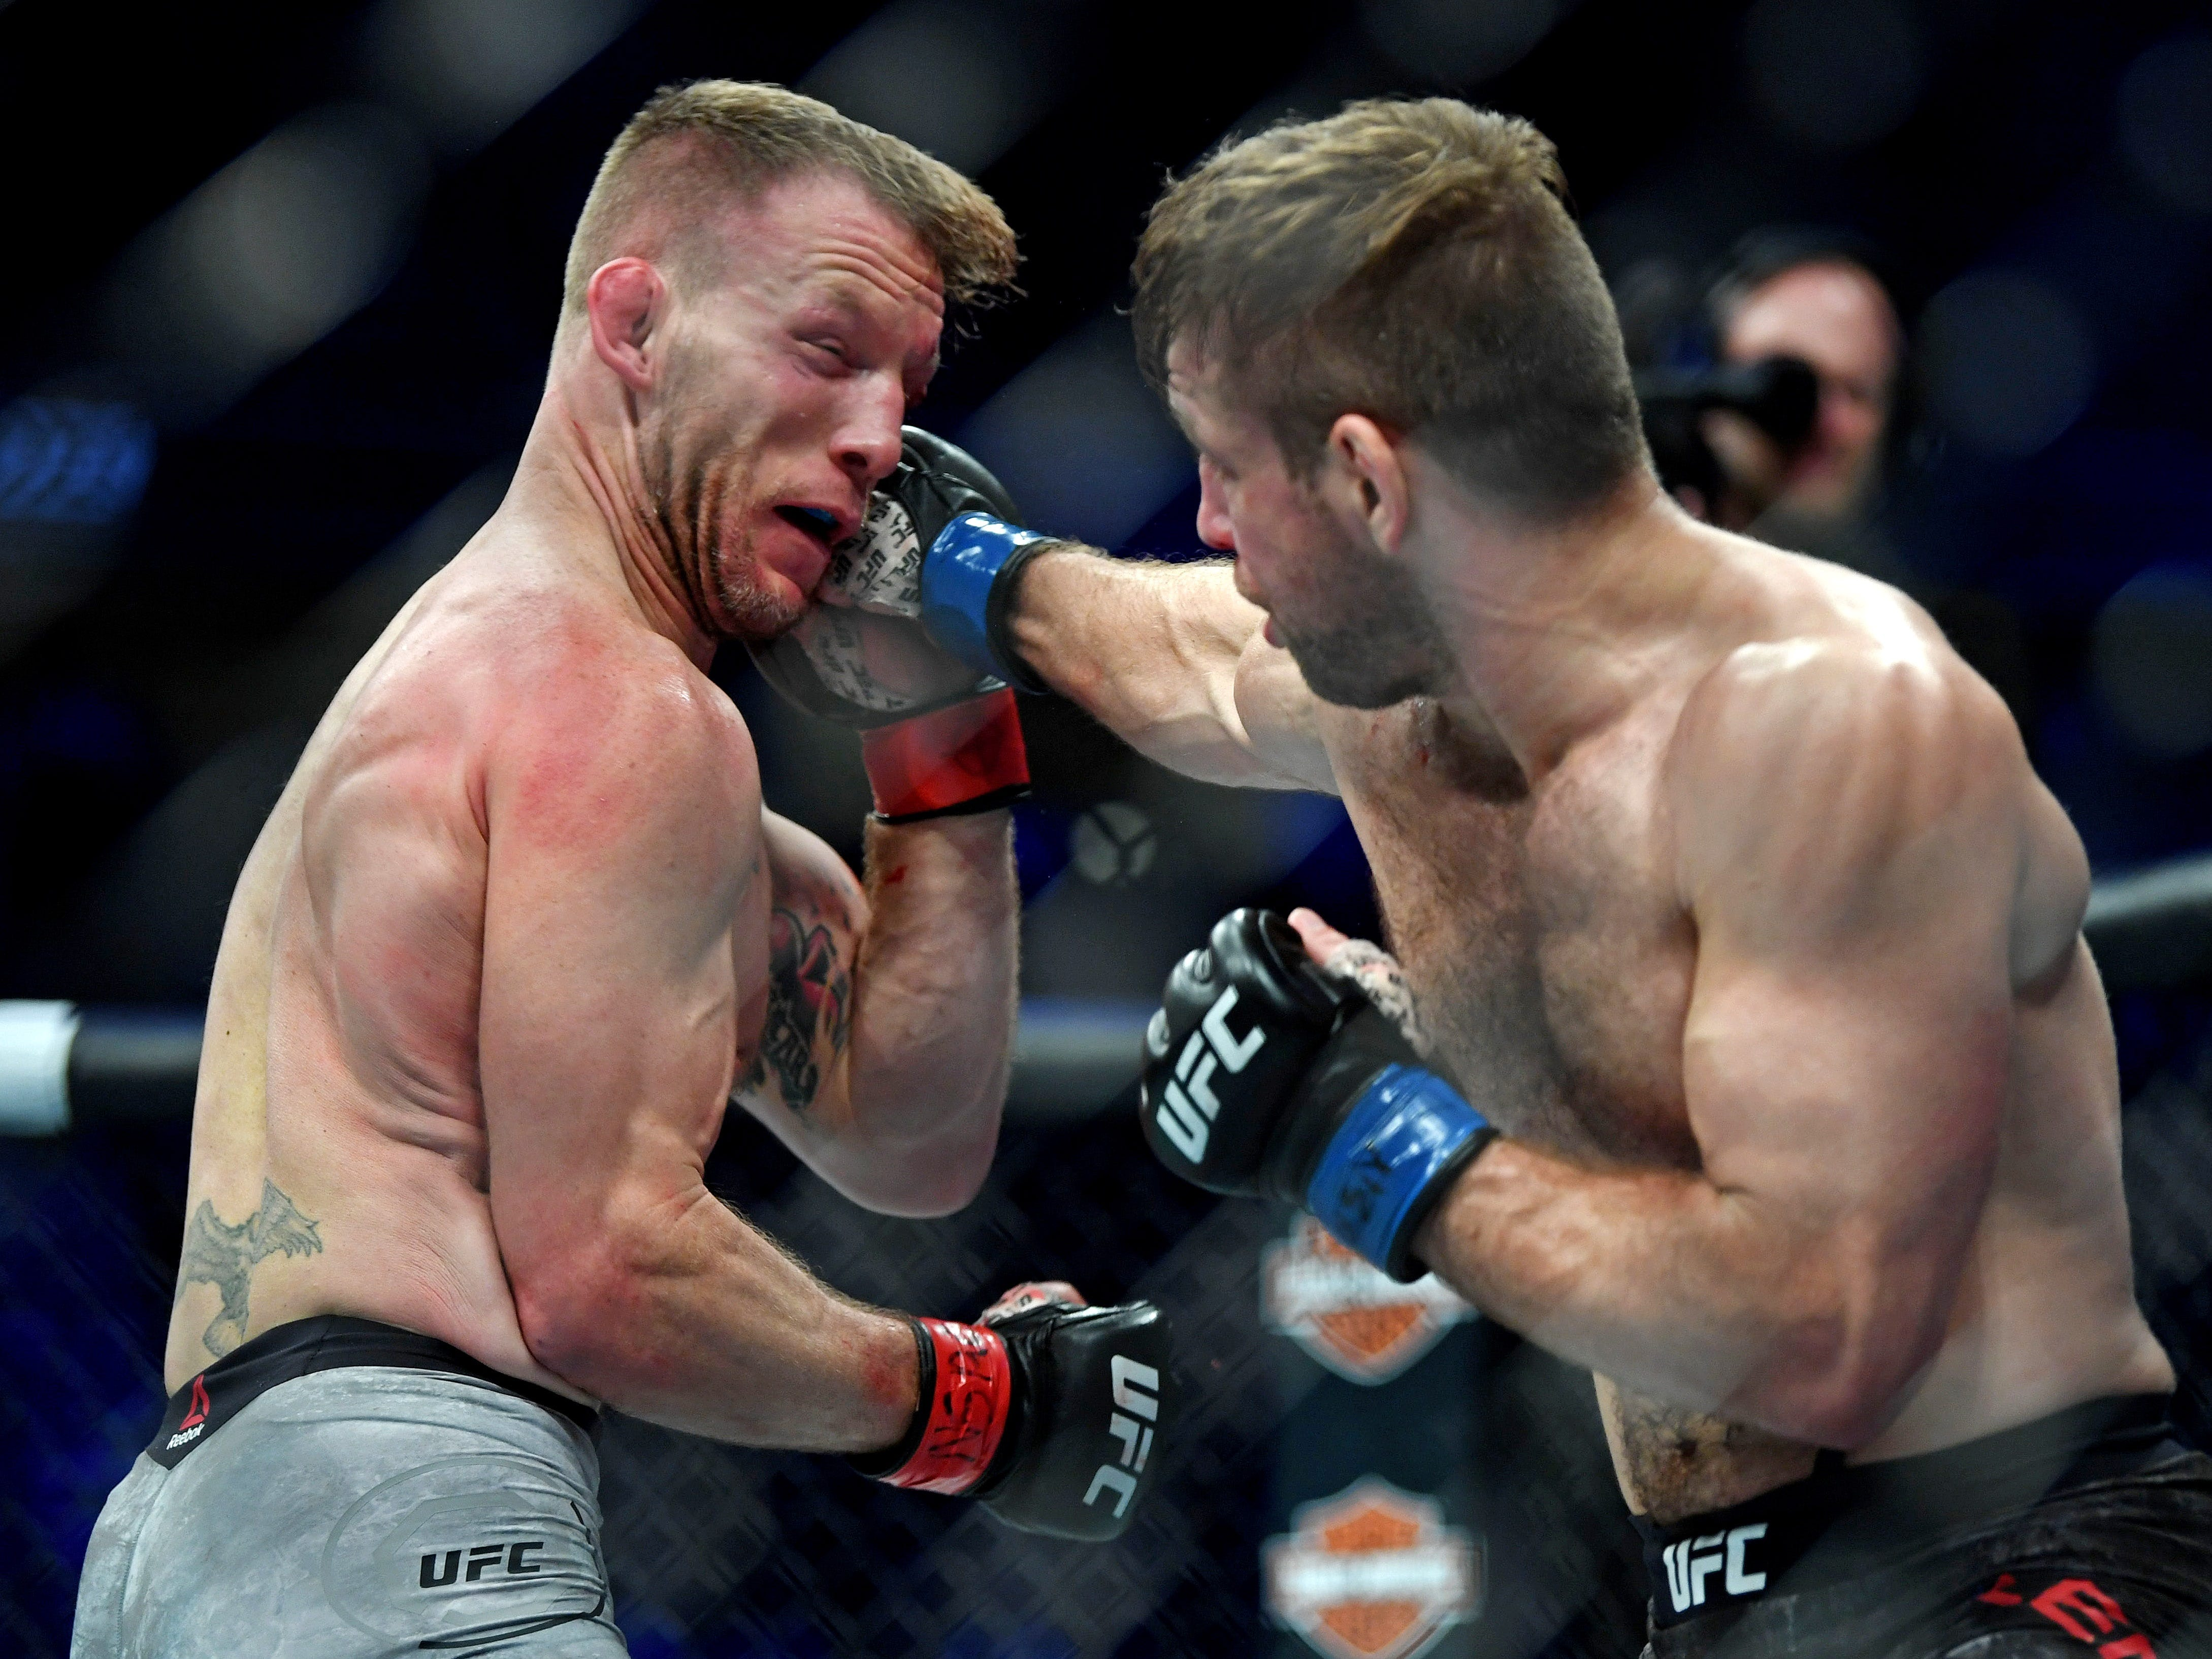 Nik Lentz, right, lands a punch against Gray Maynard during their lightweight fight.